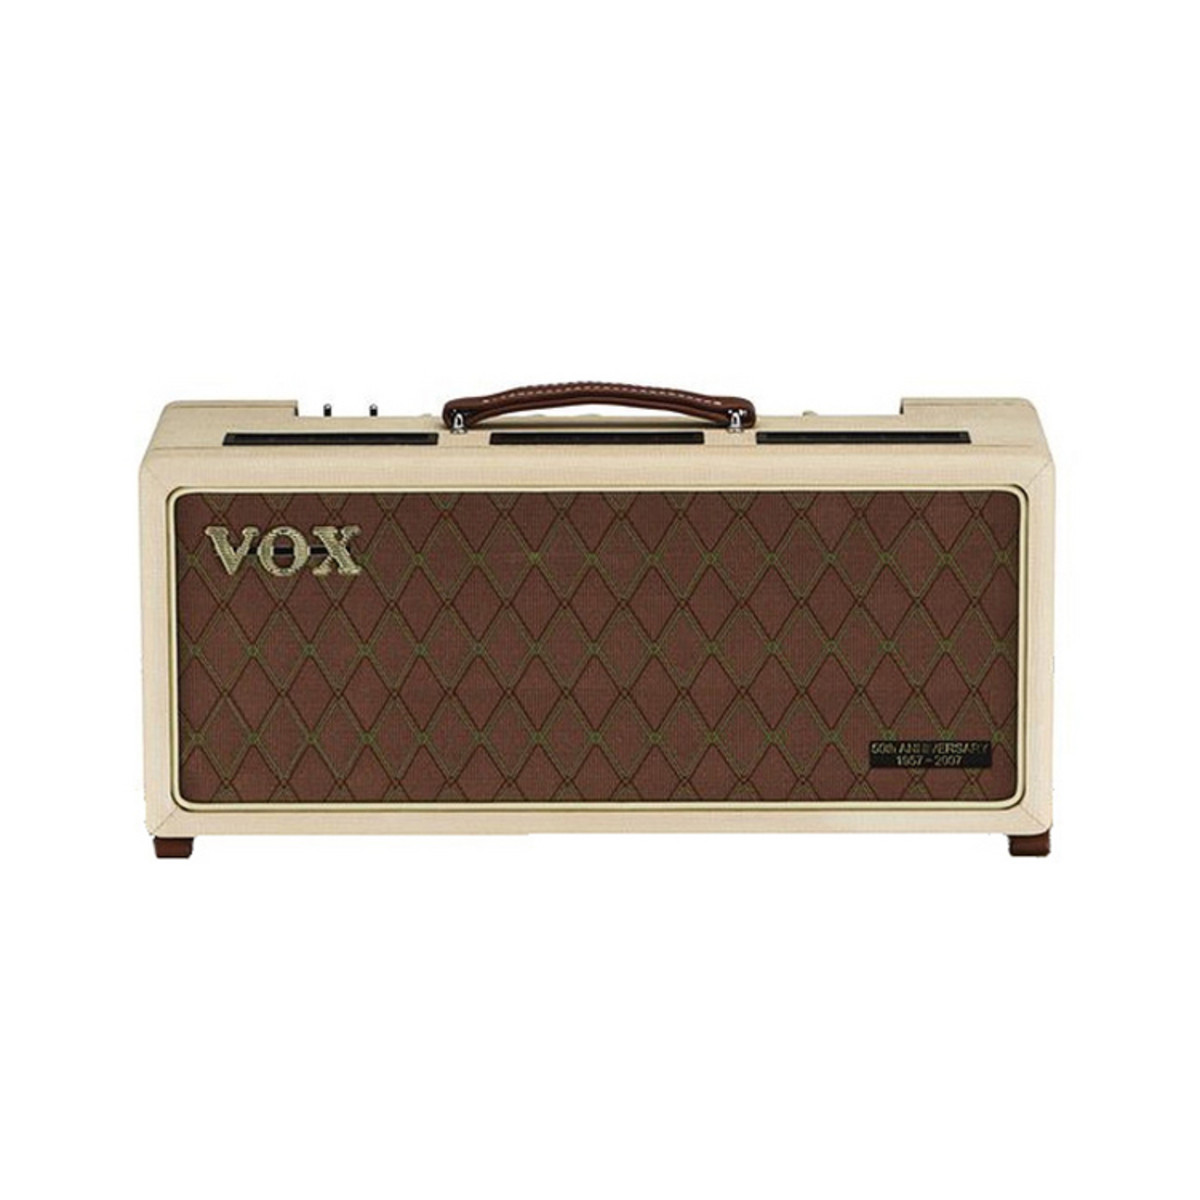 vox ac30hh heritage handwired series amp head at. Black Bedroom Furniture Sets. Home Design Ideas